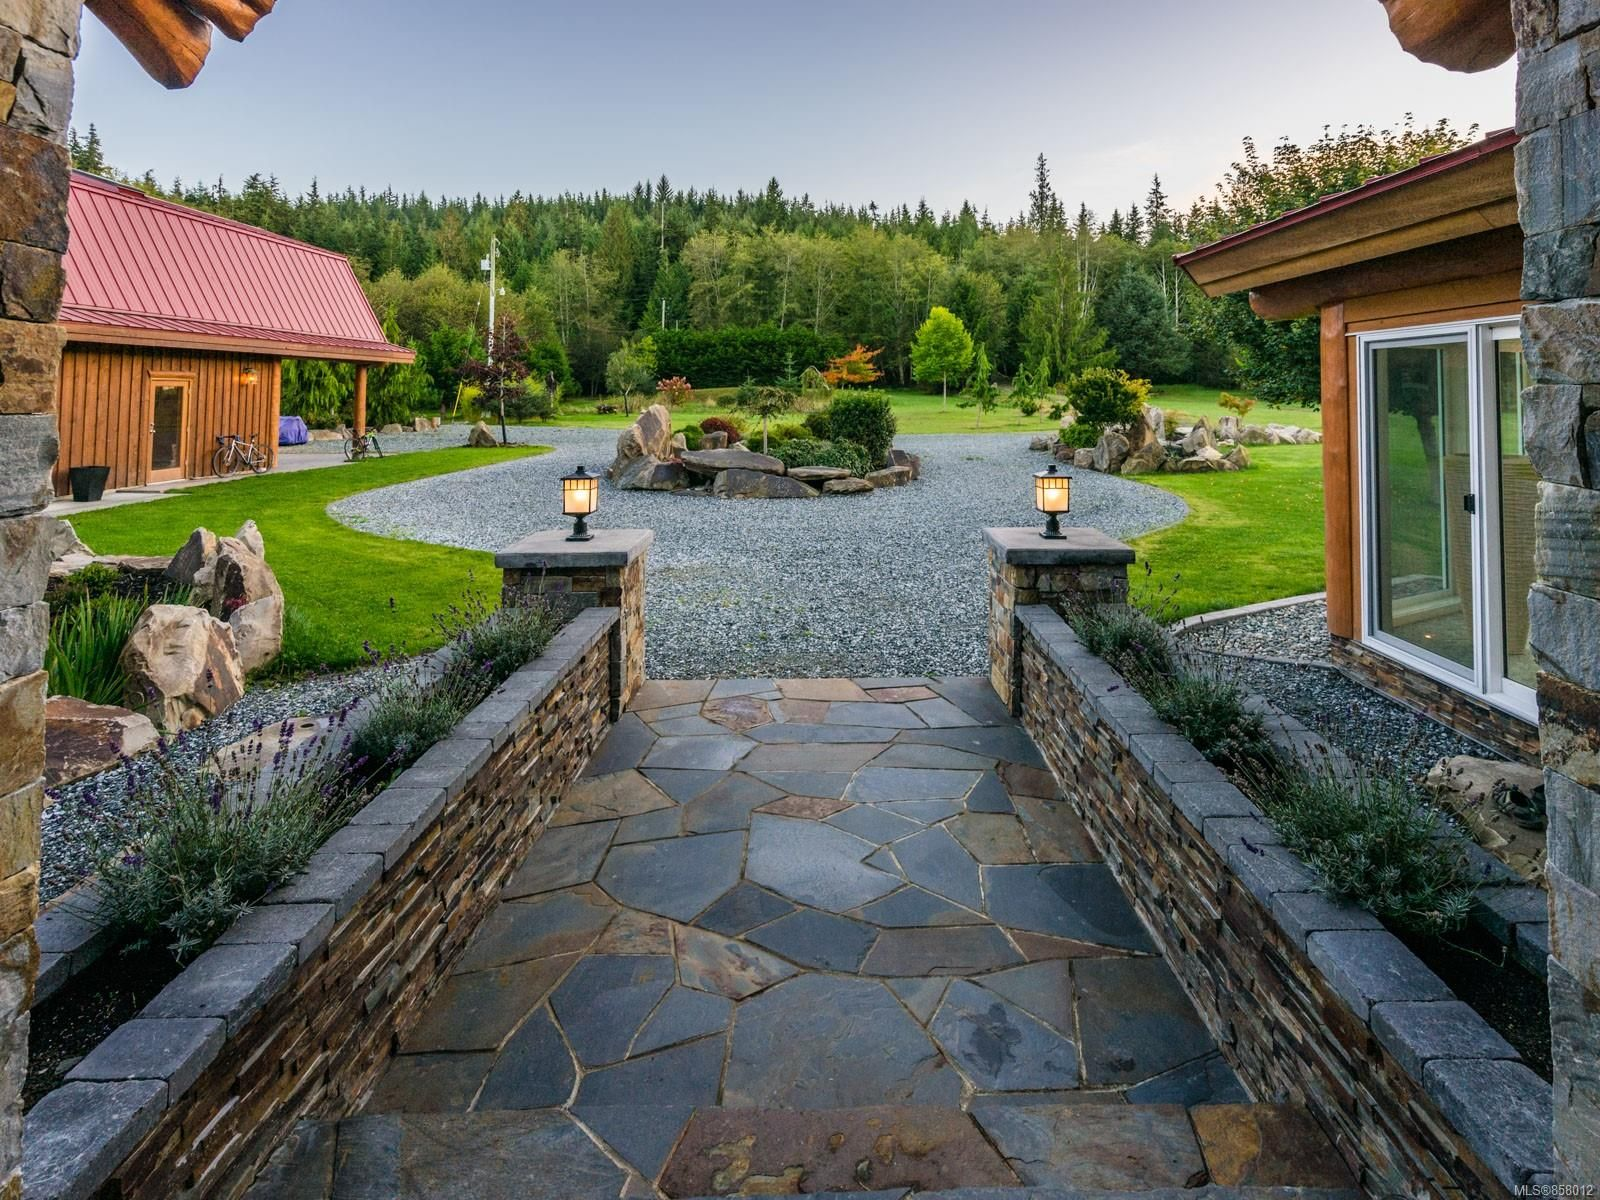 Photo 7: Photos: 6030 MINE Rd in : NI Port McNeill House for sale (North Island)  : MLS®# 858012